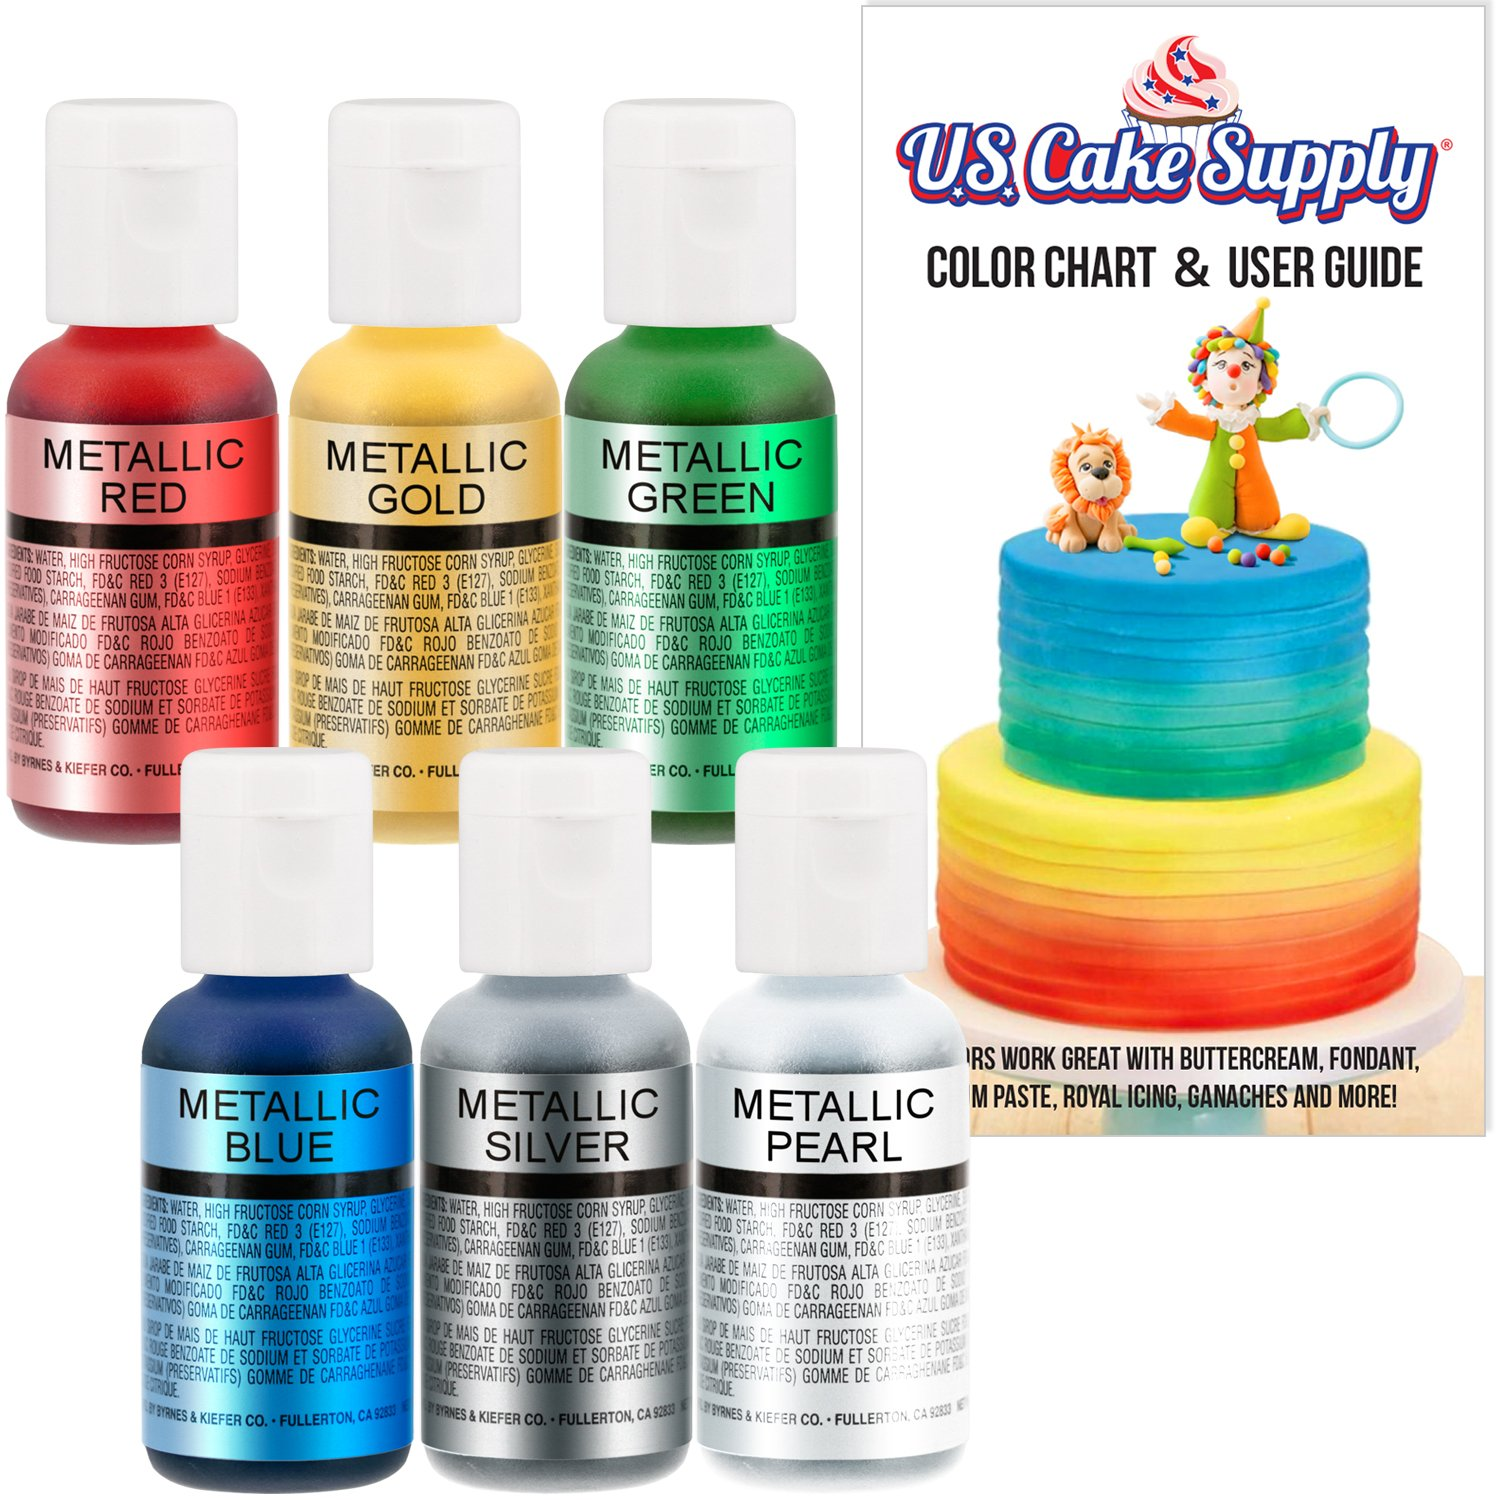 US Cake Supply by Chefmaster Airbrush Cake Pearlescent Shimmer Metallic Color Set - The 6 Most Popular Metallic Colors in 0.7 fl. oz. (20ml) Bottles